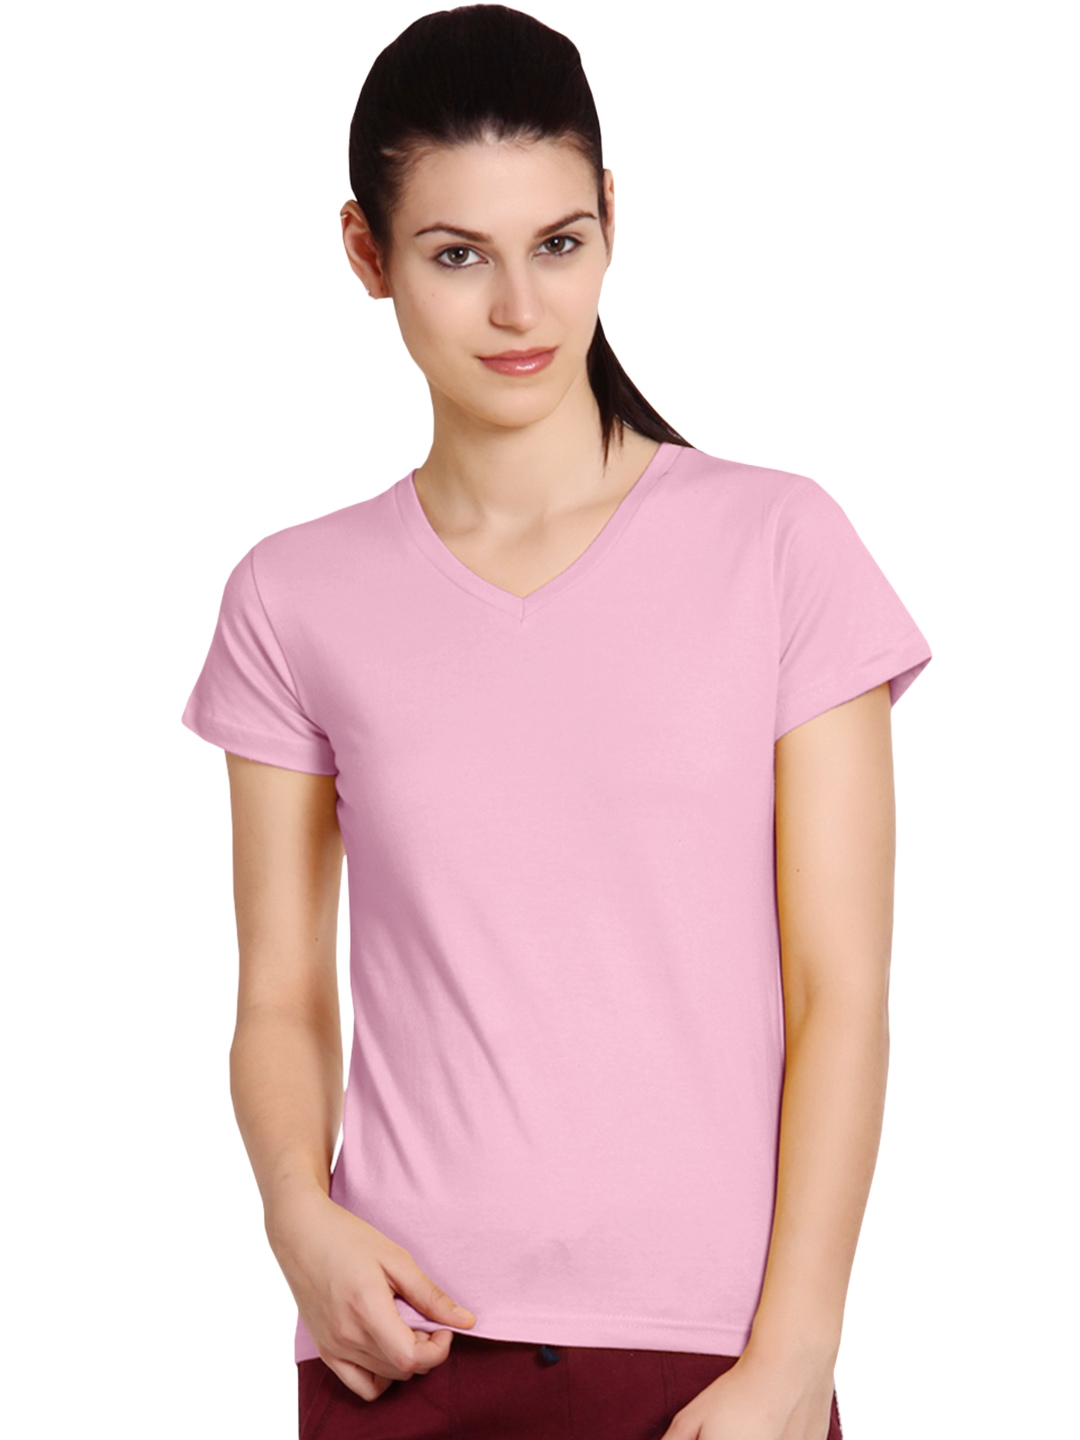 Myntra softwear pink t shirt 849851 buy myntra at best for Shirts online shopping lowest price